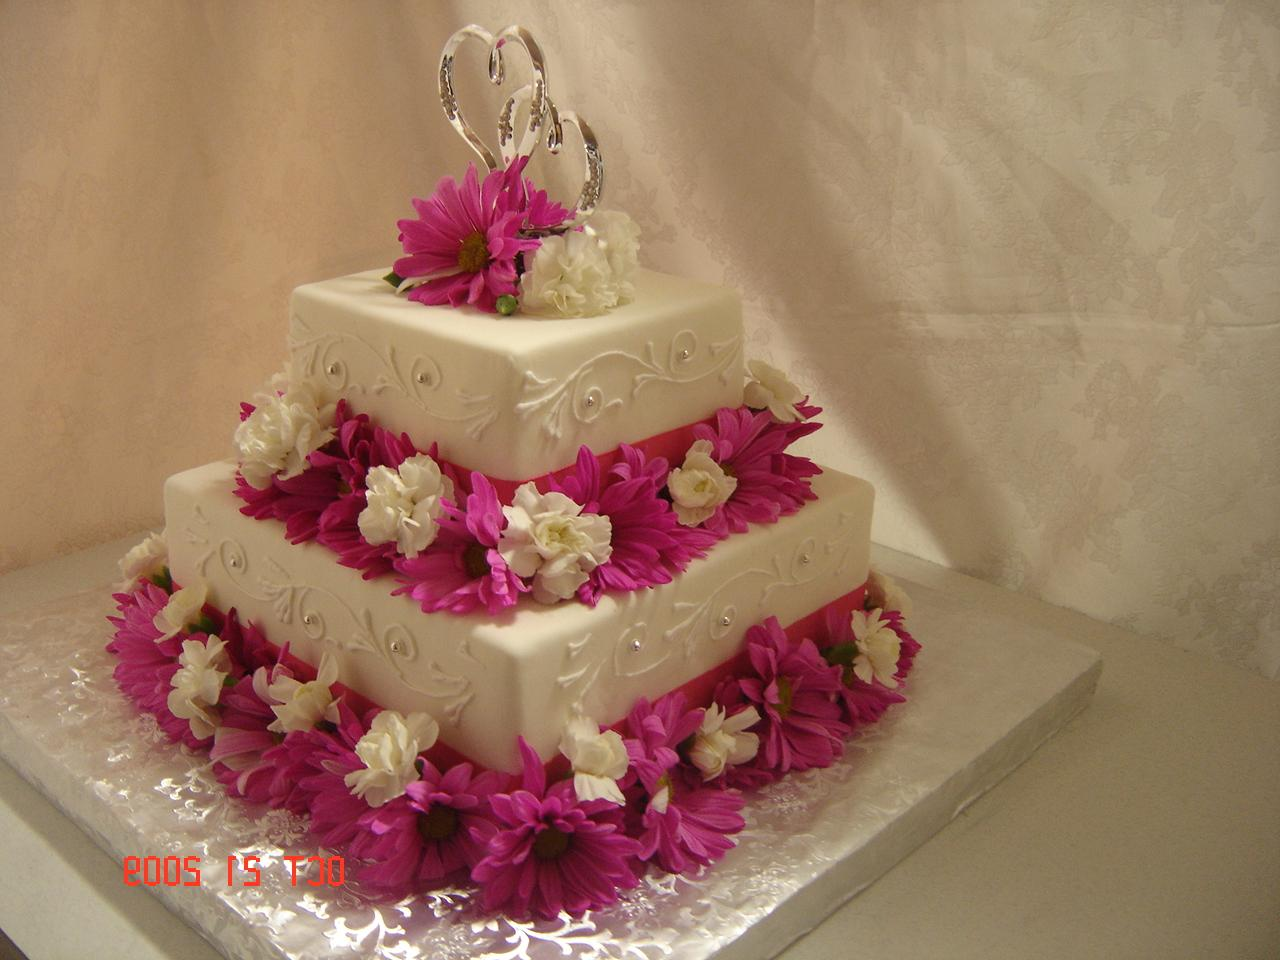 2 tier cake-all in fondant with royal icing scrolls- 10x6 Serves 68 guests